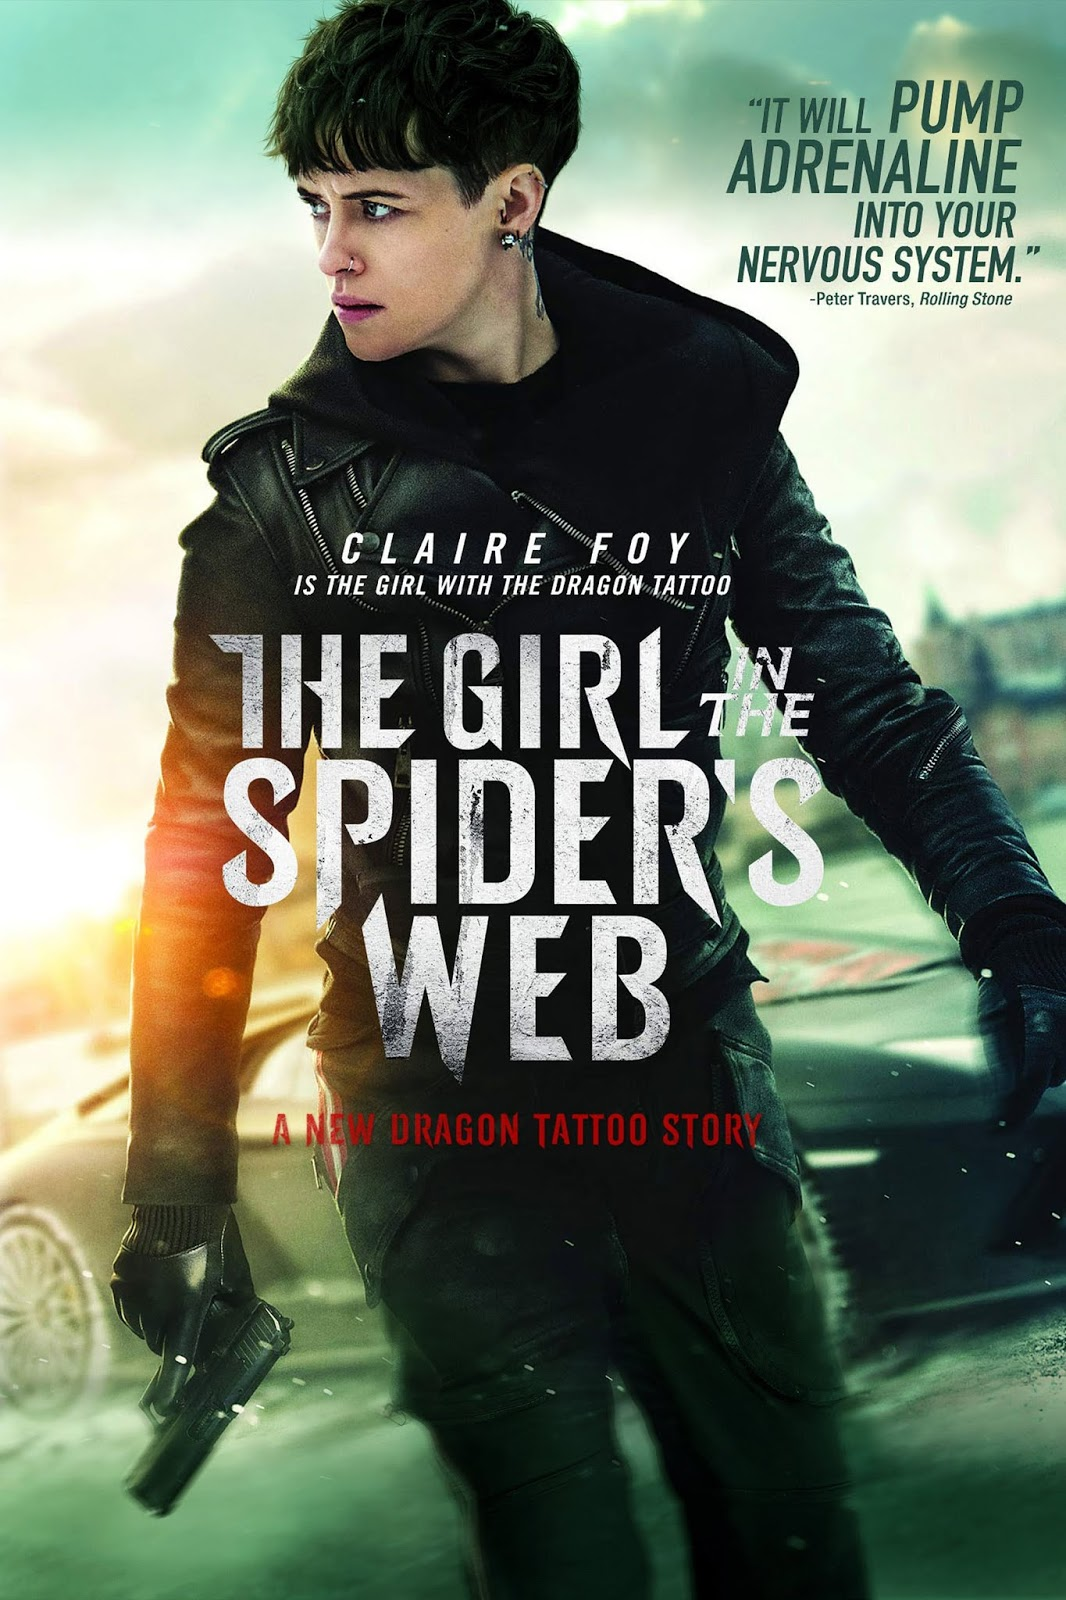 The Girl In The Spiders Web 2018 Hindi-English ORG Dual Audio 480p BluRay 30MB With ESub